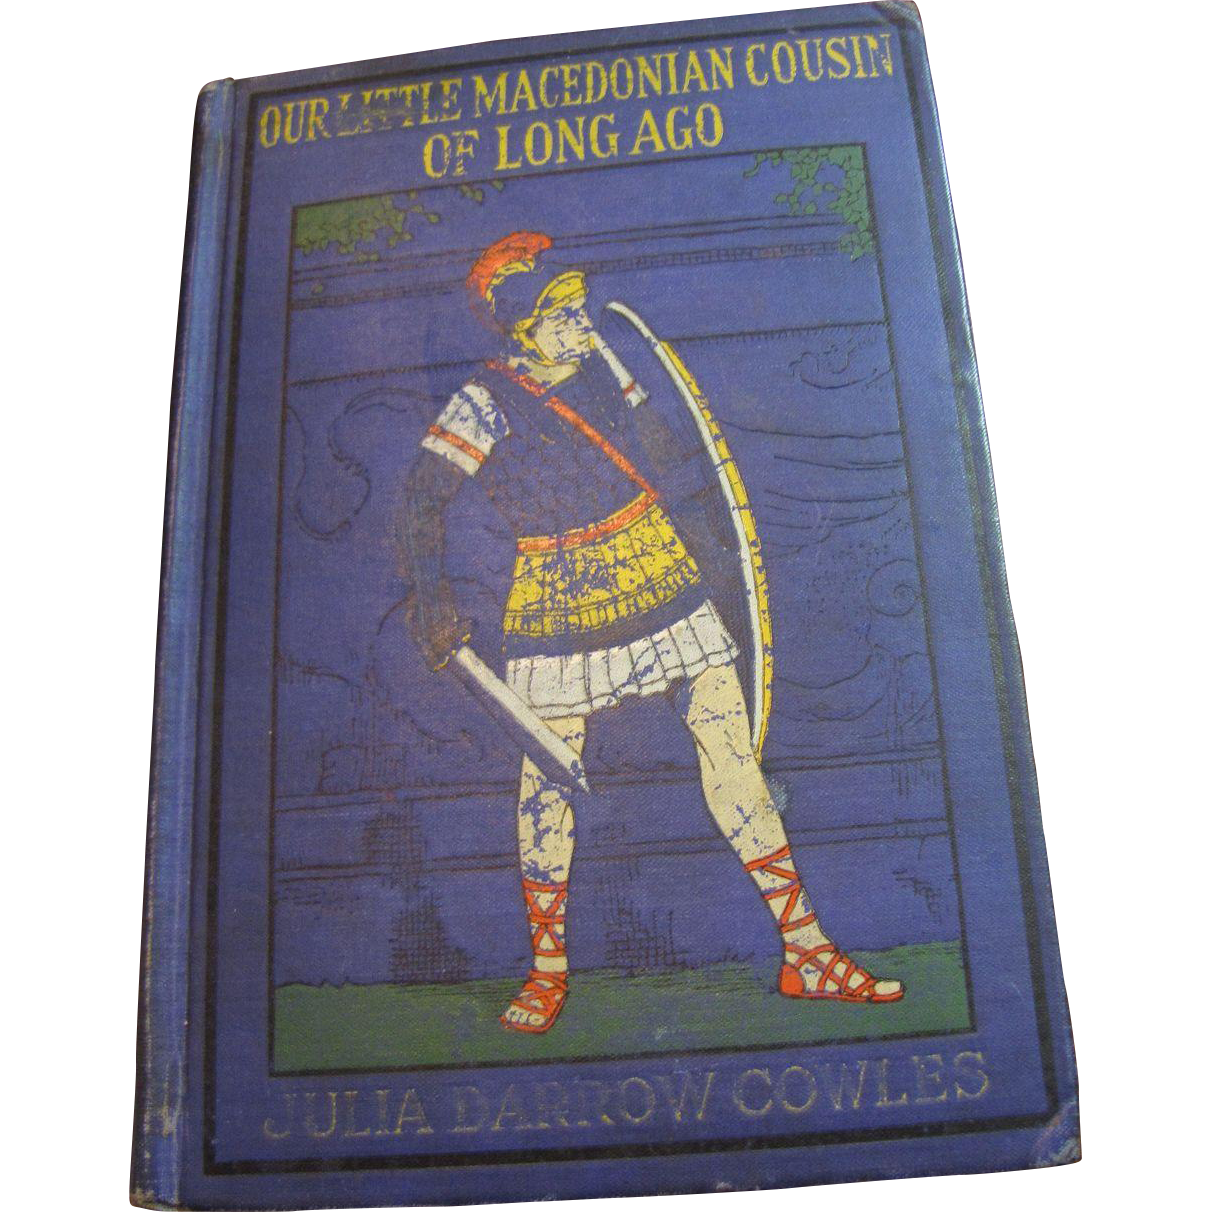 1915 Our Little Macedonian Cousin of Long Ago by Julia Darrow Cowles